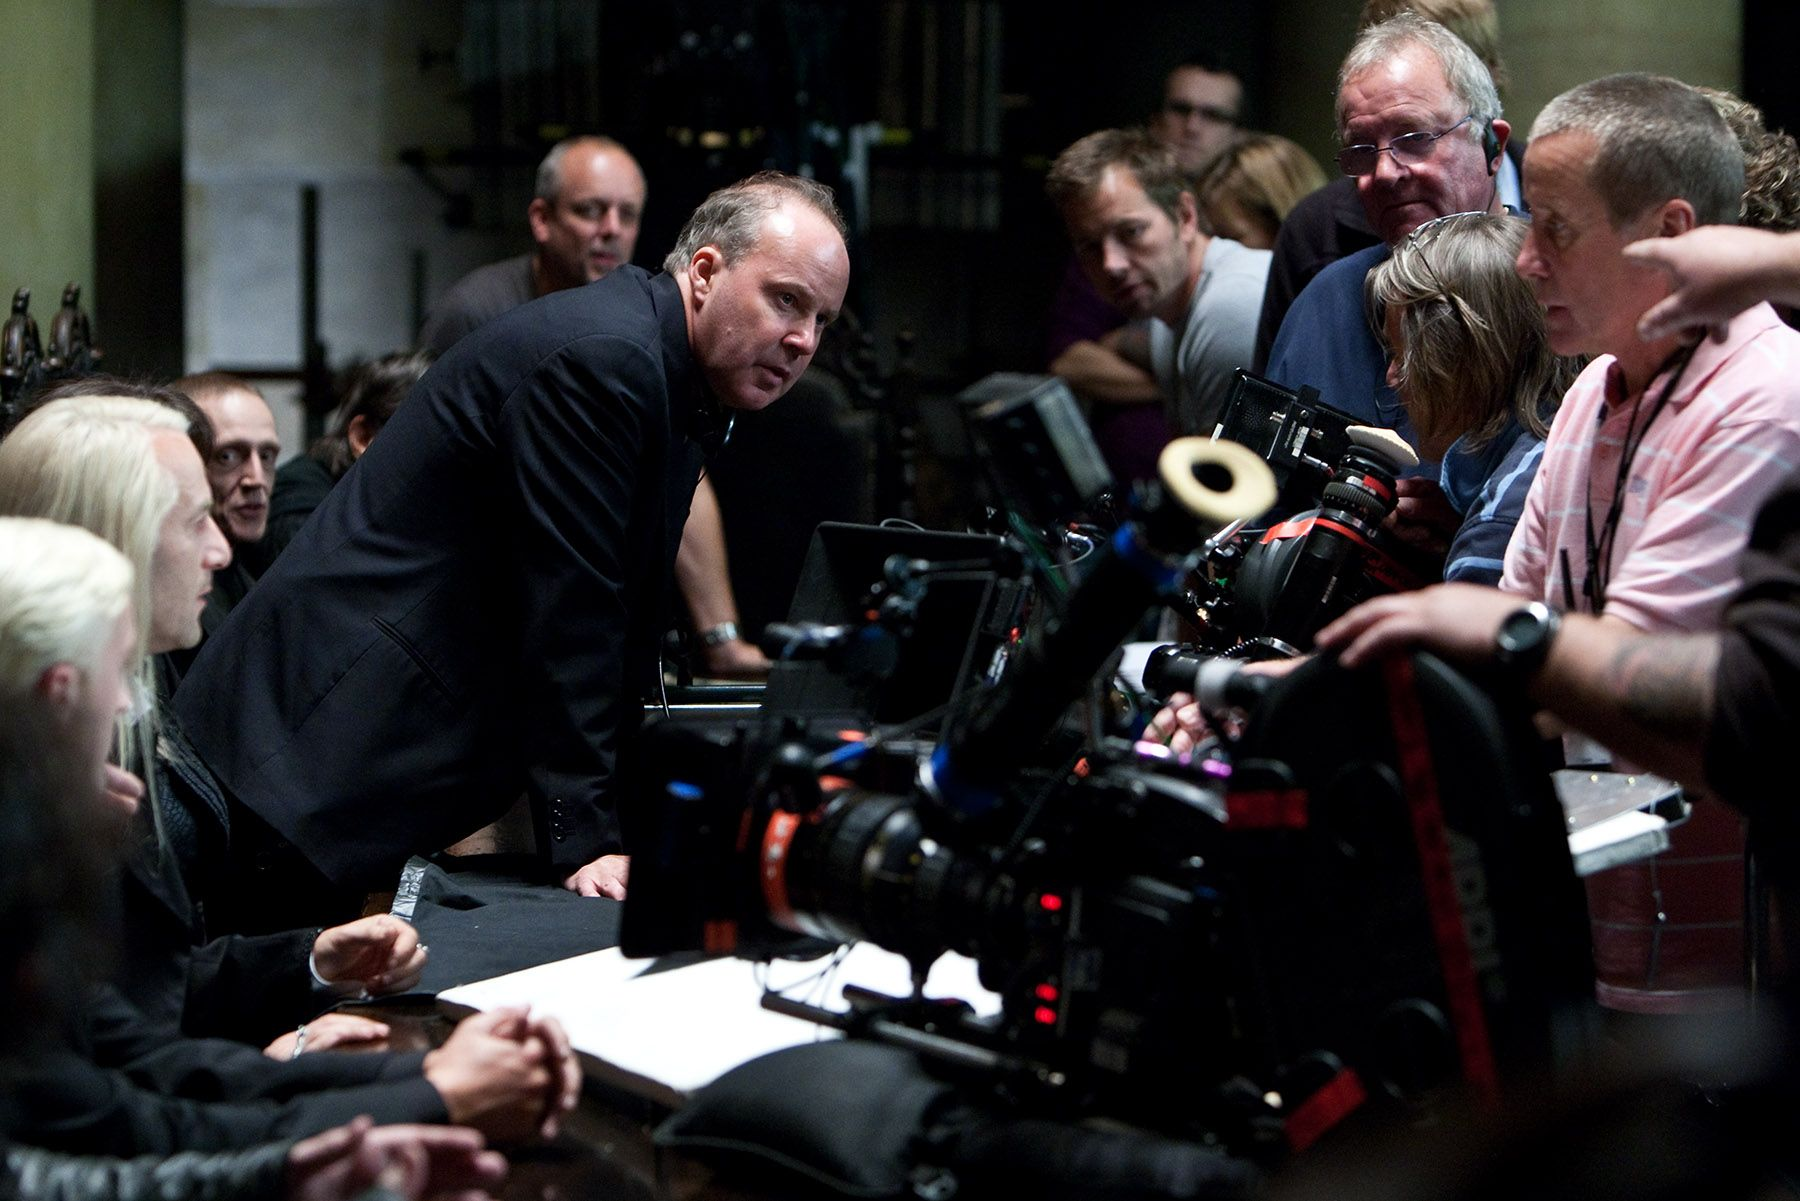 Harry Potter Camera Crew In View : Harry potter and the deathly hallows part i movie images daniel